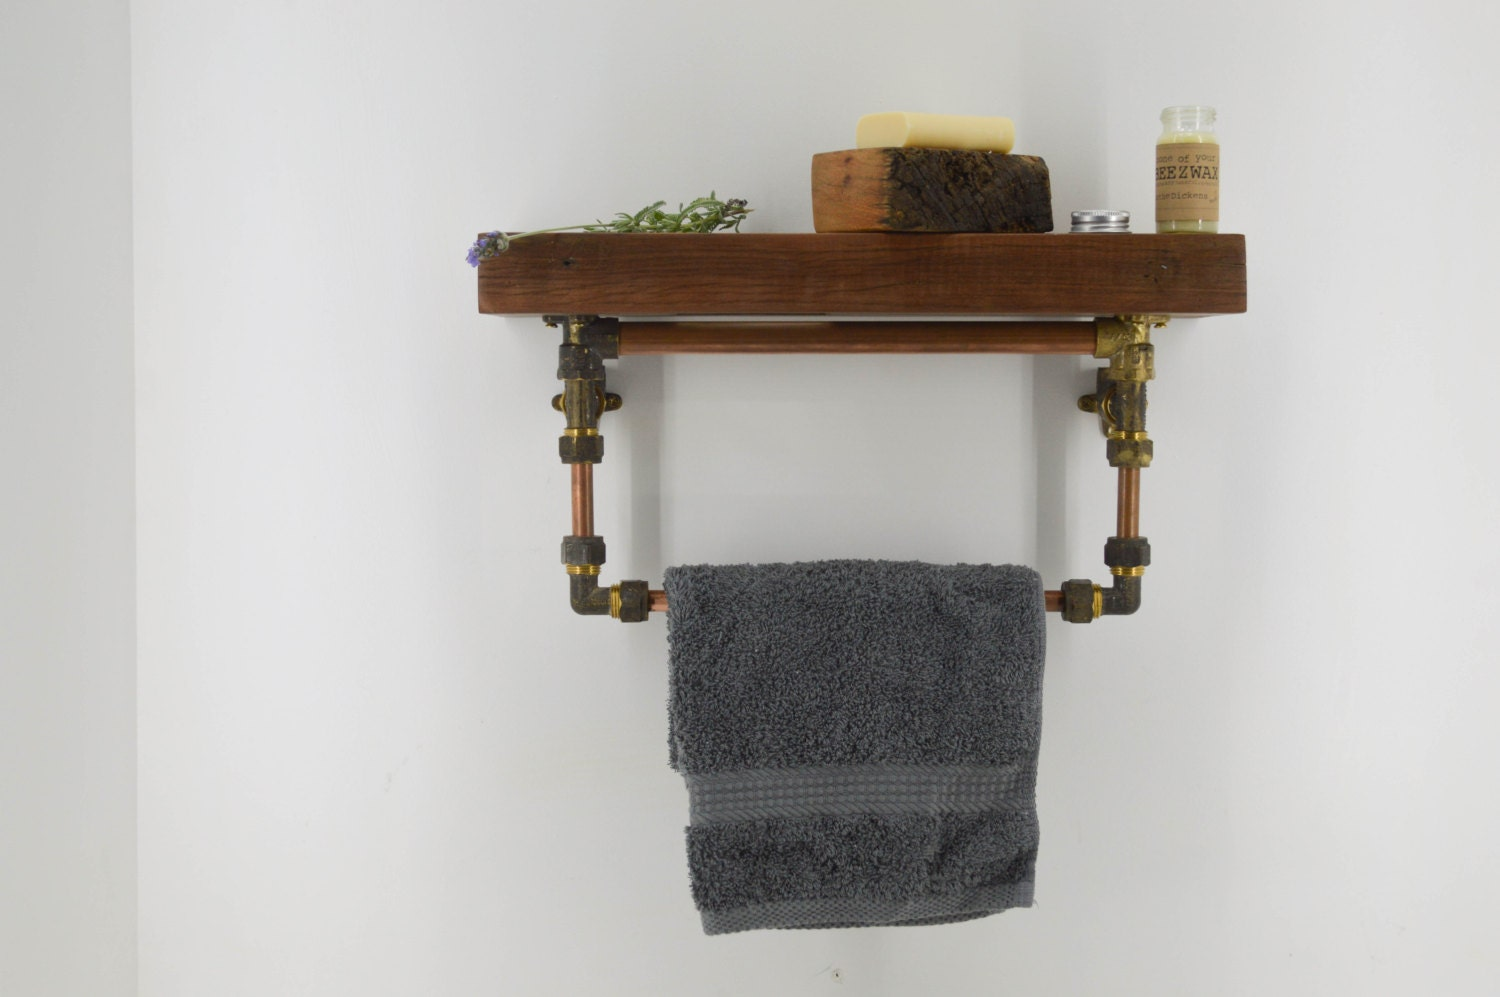 bathroom shelf with towel rail rack wood copper and brass. Black Bedroom Furniture Sets. Home Design Ideas